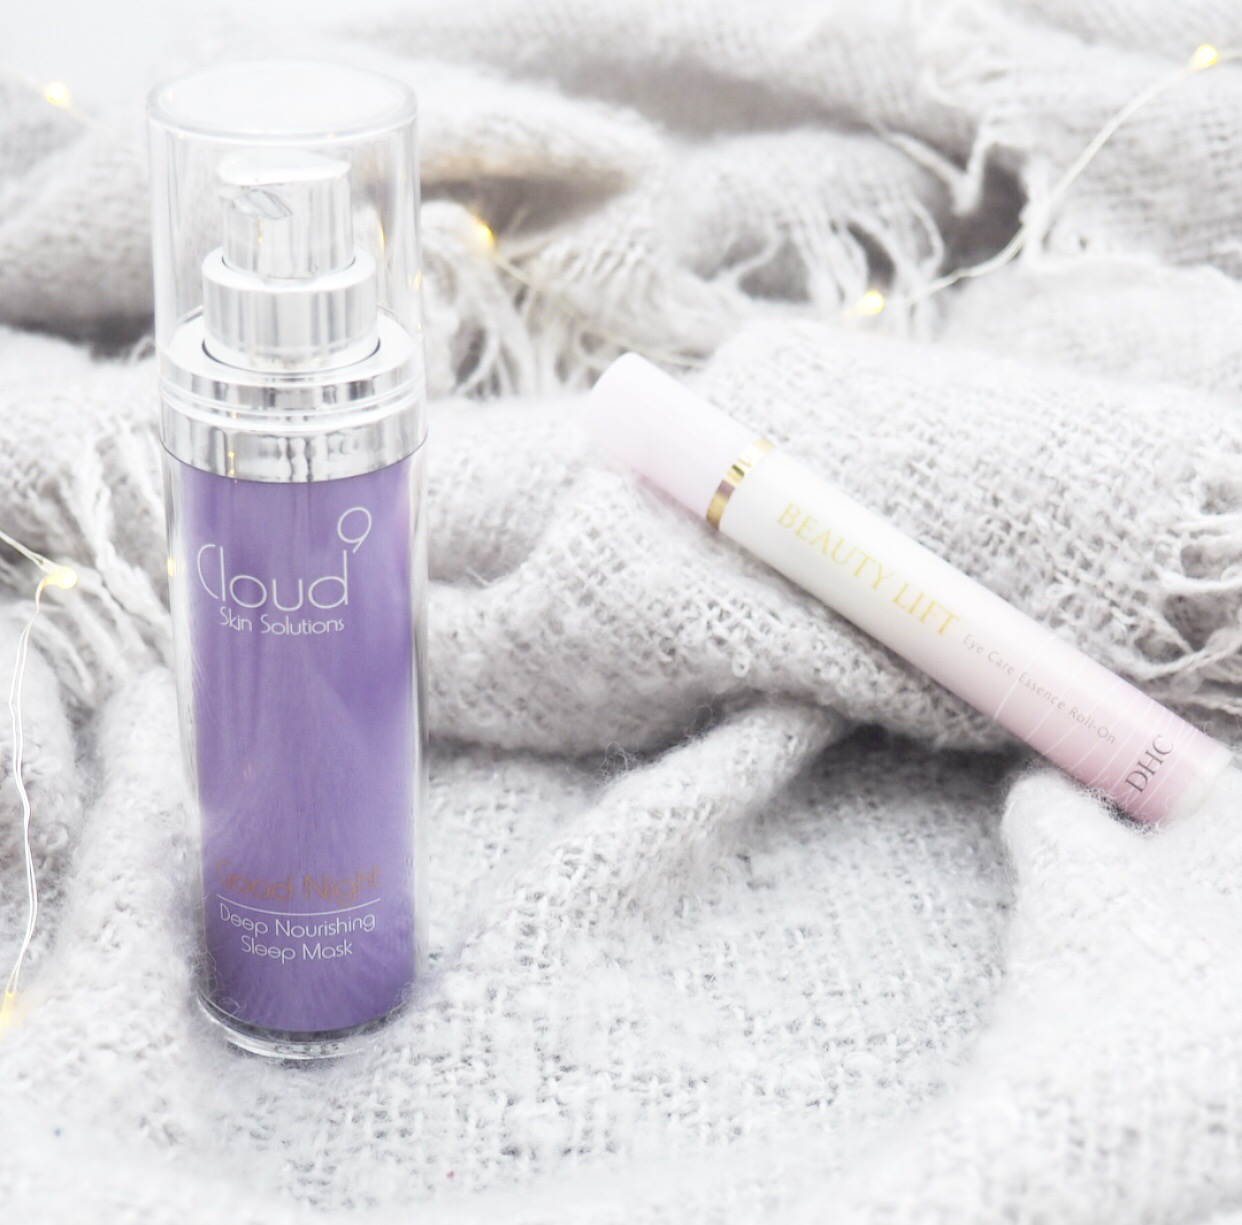 *DHC Beauty Lift Eye Care Essence Roll-On: